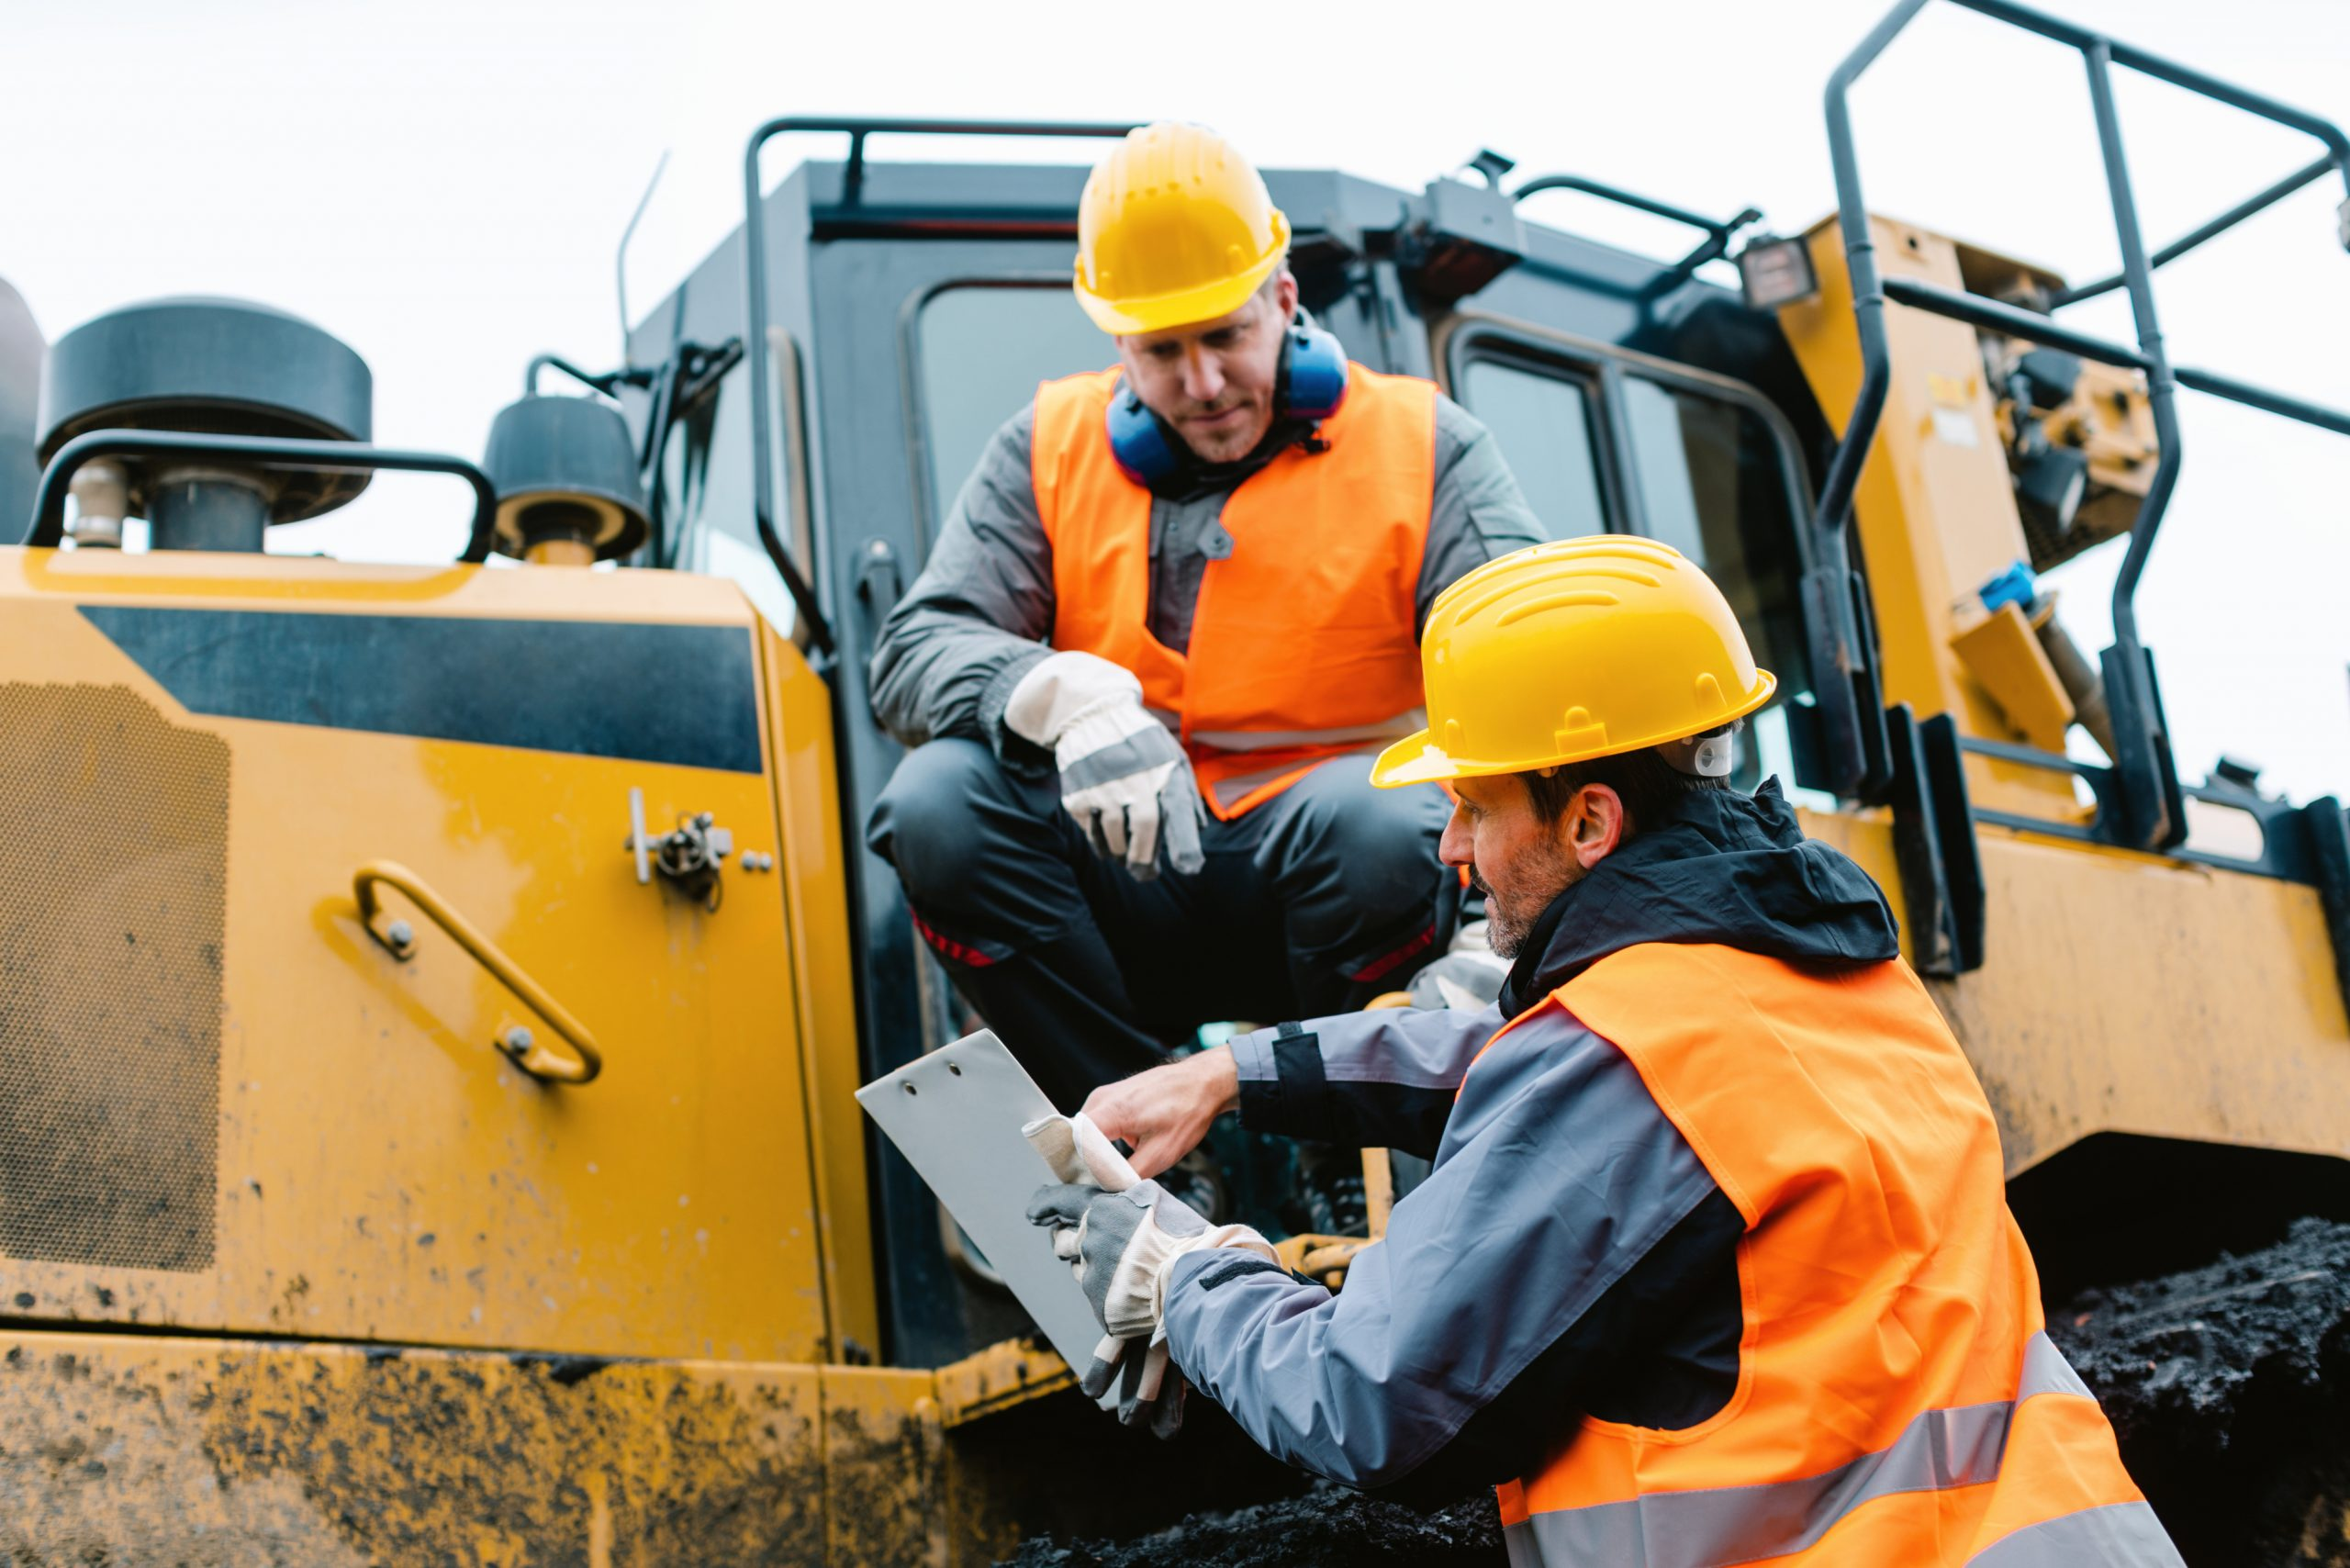 Crosby Insurance - Groundworkers Insurance Public liability